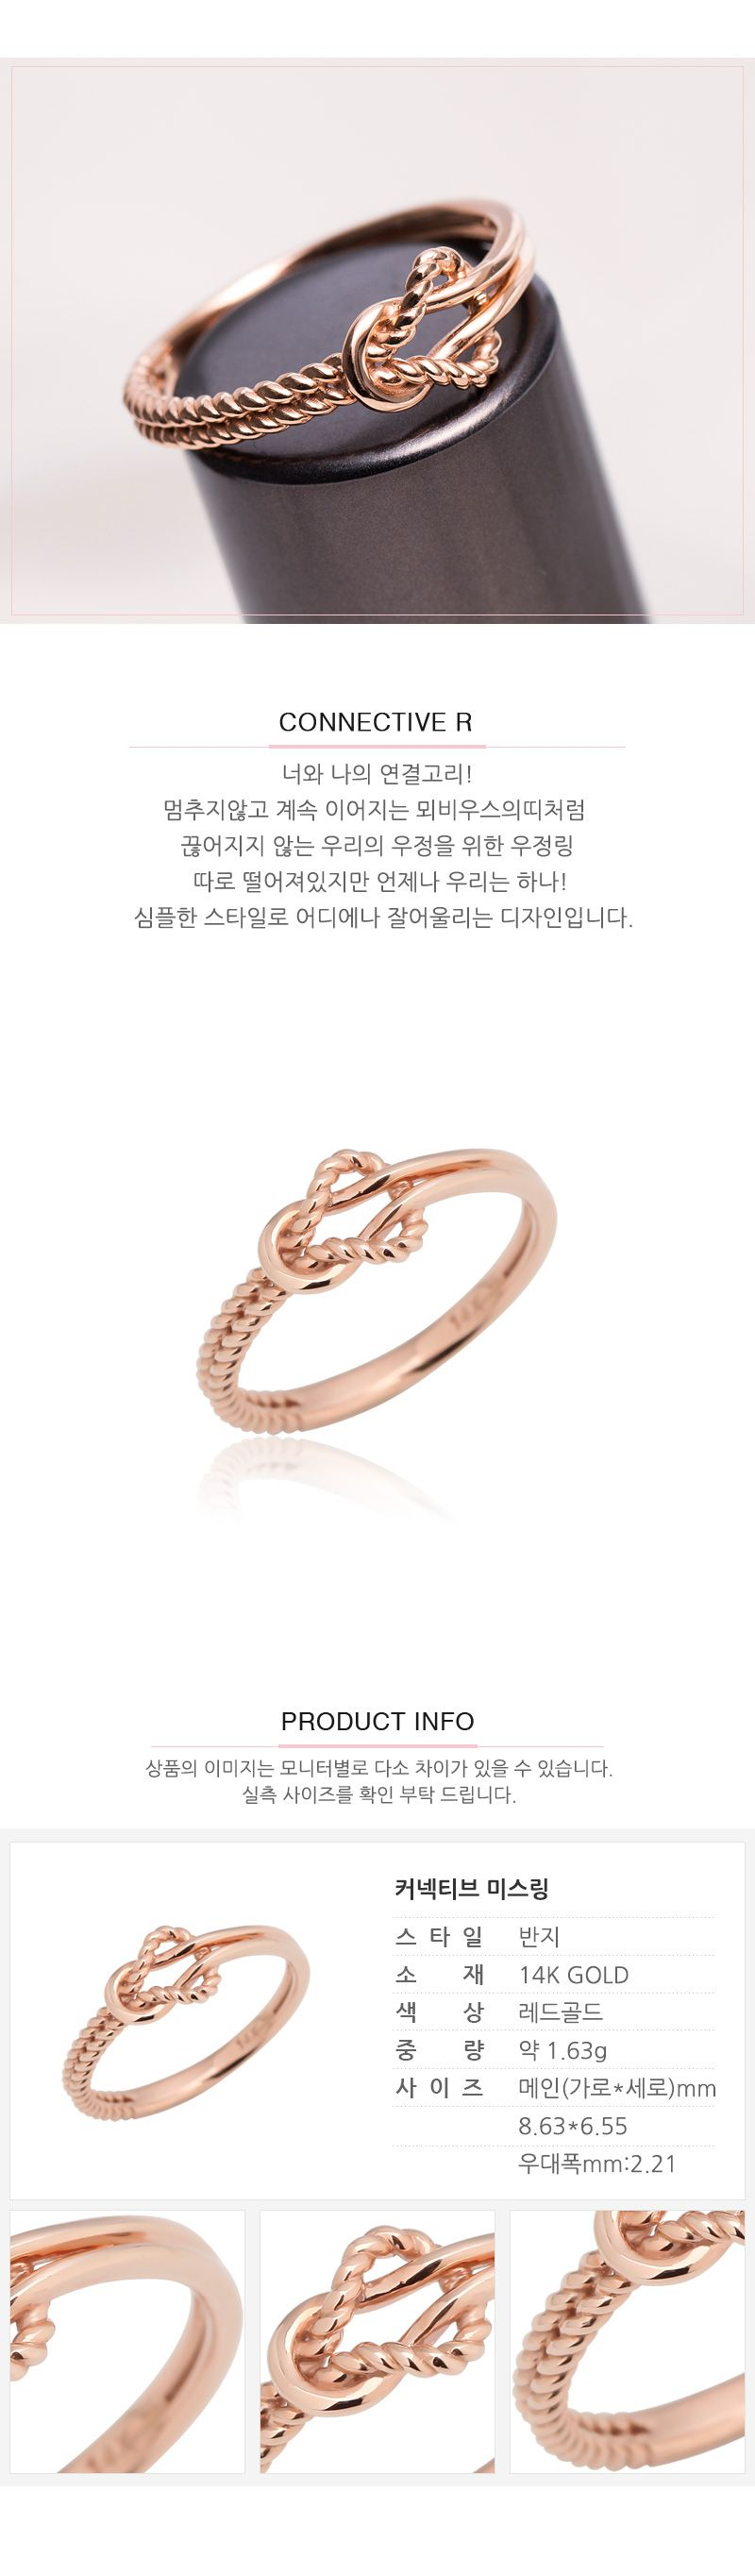 naveah rings india online prices store buy yellow amazon gold dp the pc at korean in jeweller jewellery low diamond